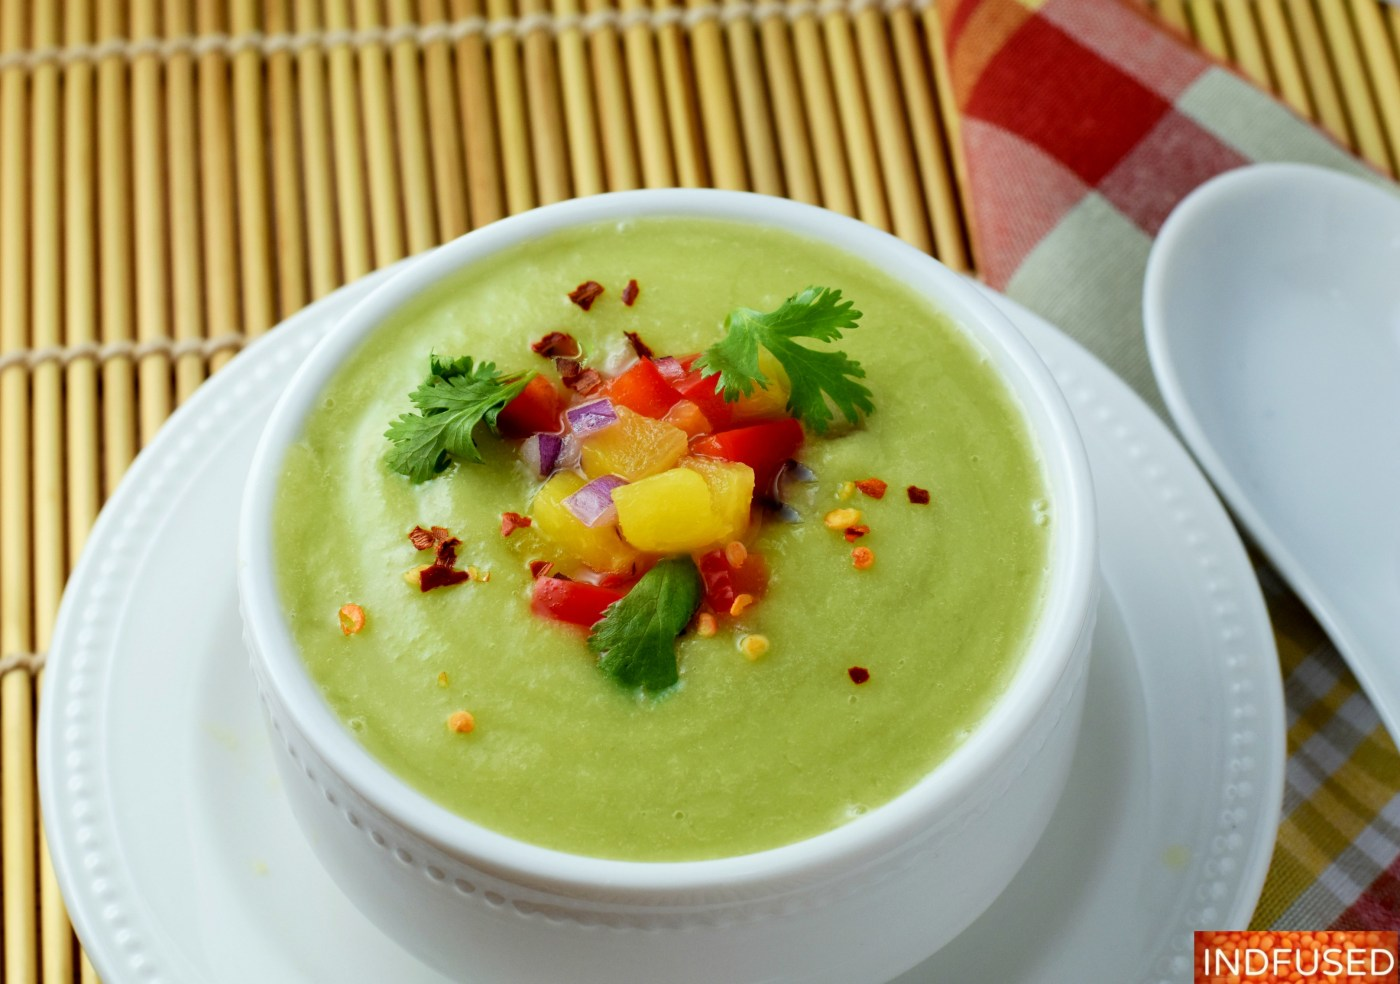 Chilled Cucumber Avocado Soup with ginger is a cooling, refreshing vegetarian, vegan and gluten free soup. perfect for the summer. Serves 2